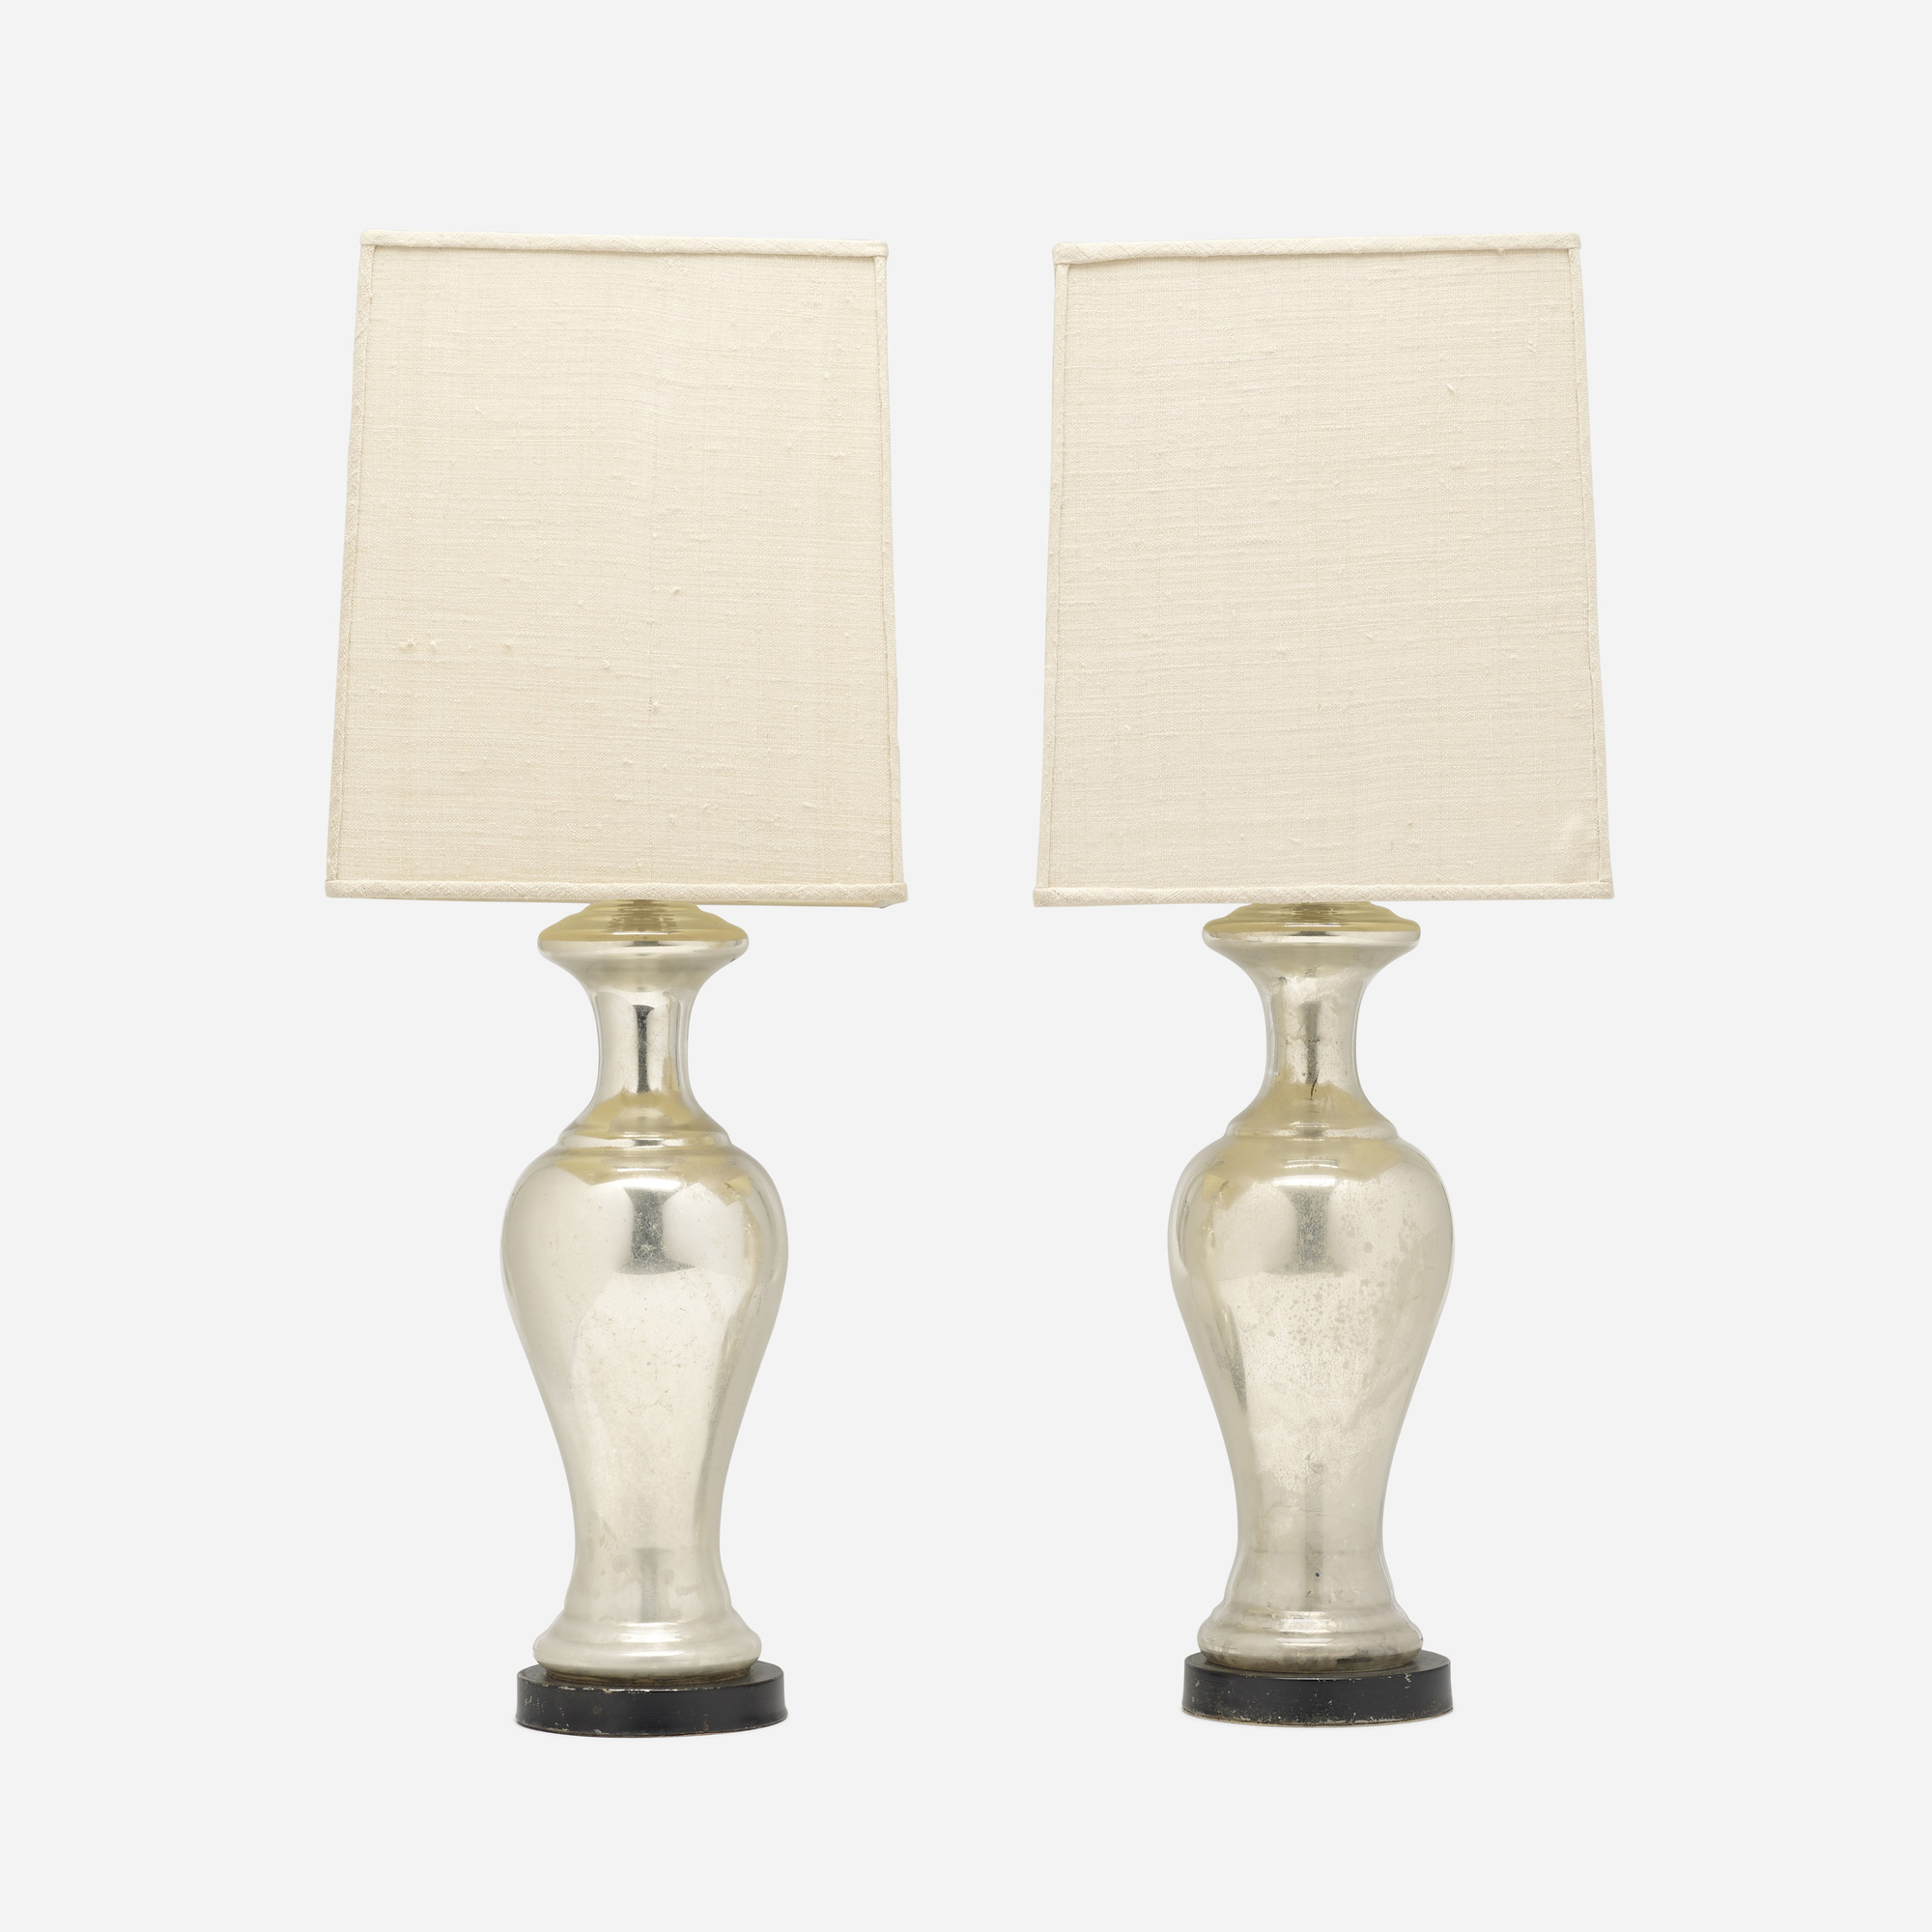 246: Modern / table lamps, pair (1 of 2)